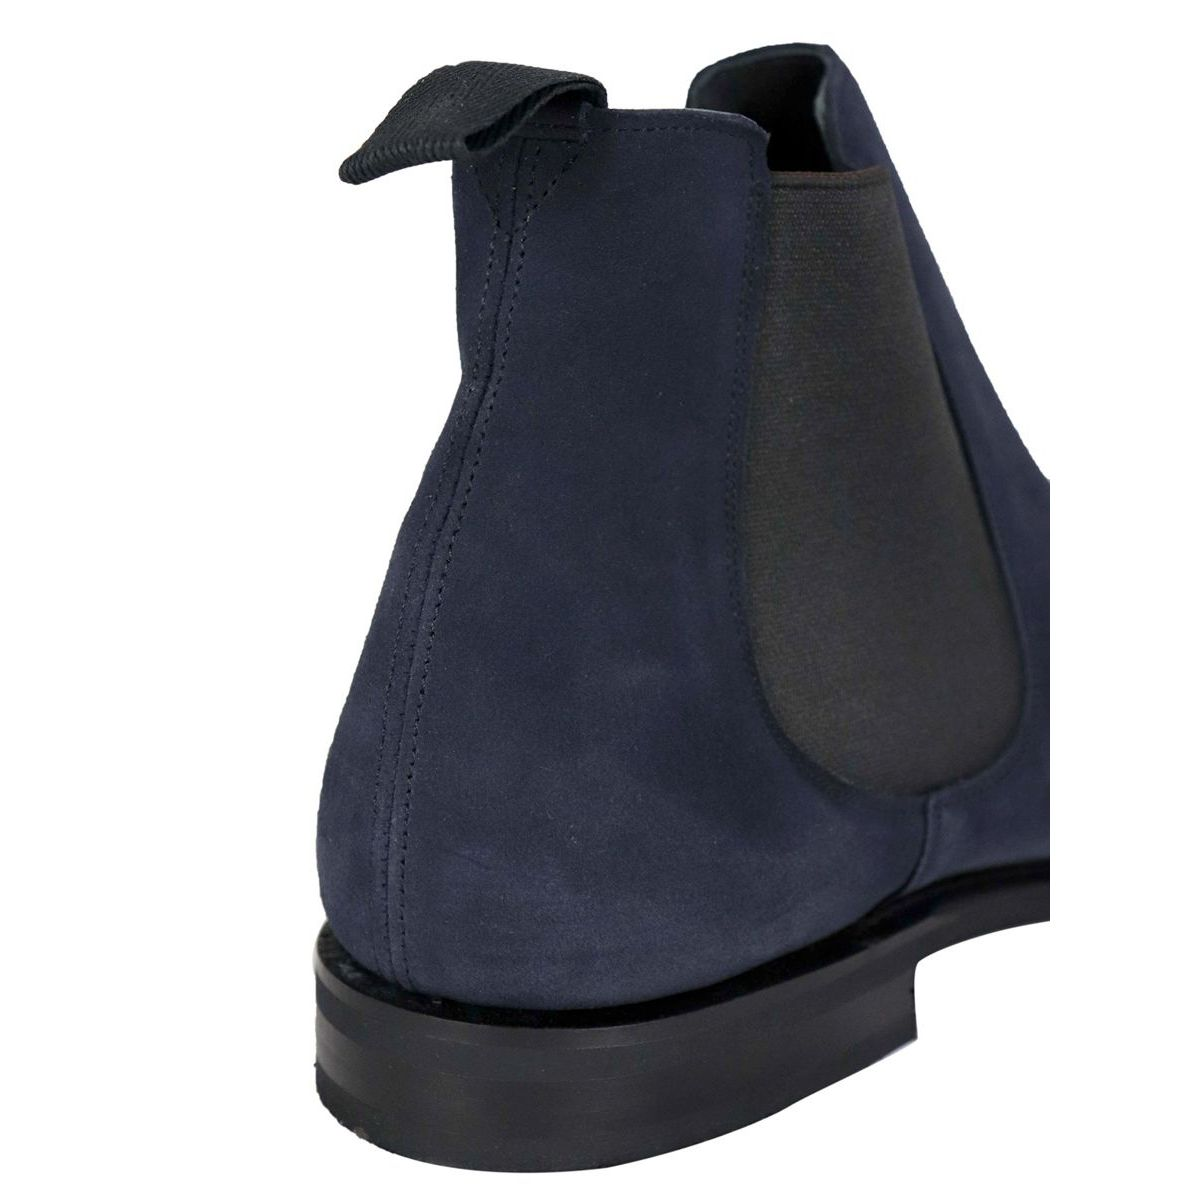 Prenton ankle boot in suede with elastic Navy Church's